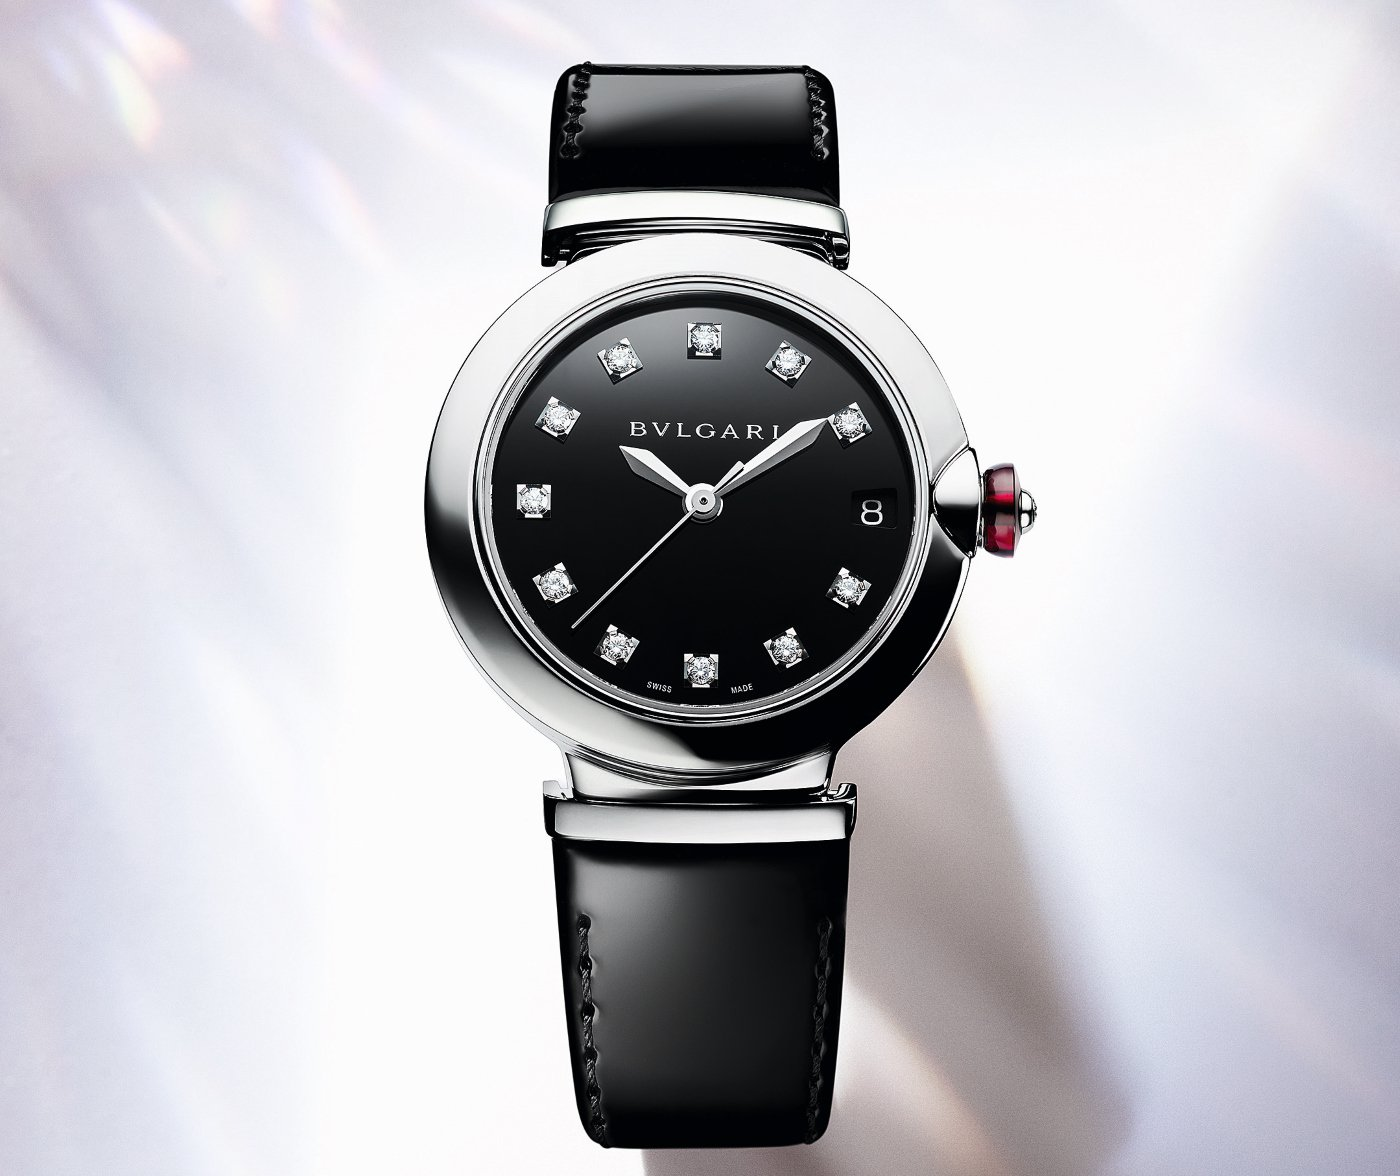 bulgari_lvcea_laquered_-_europa_star_watch_magazine_2021